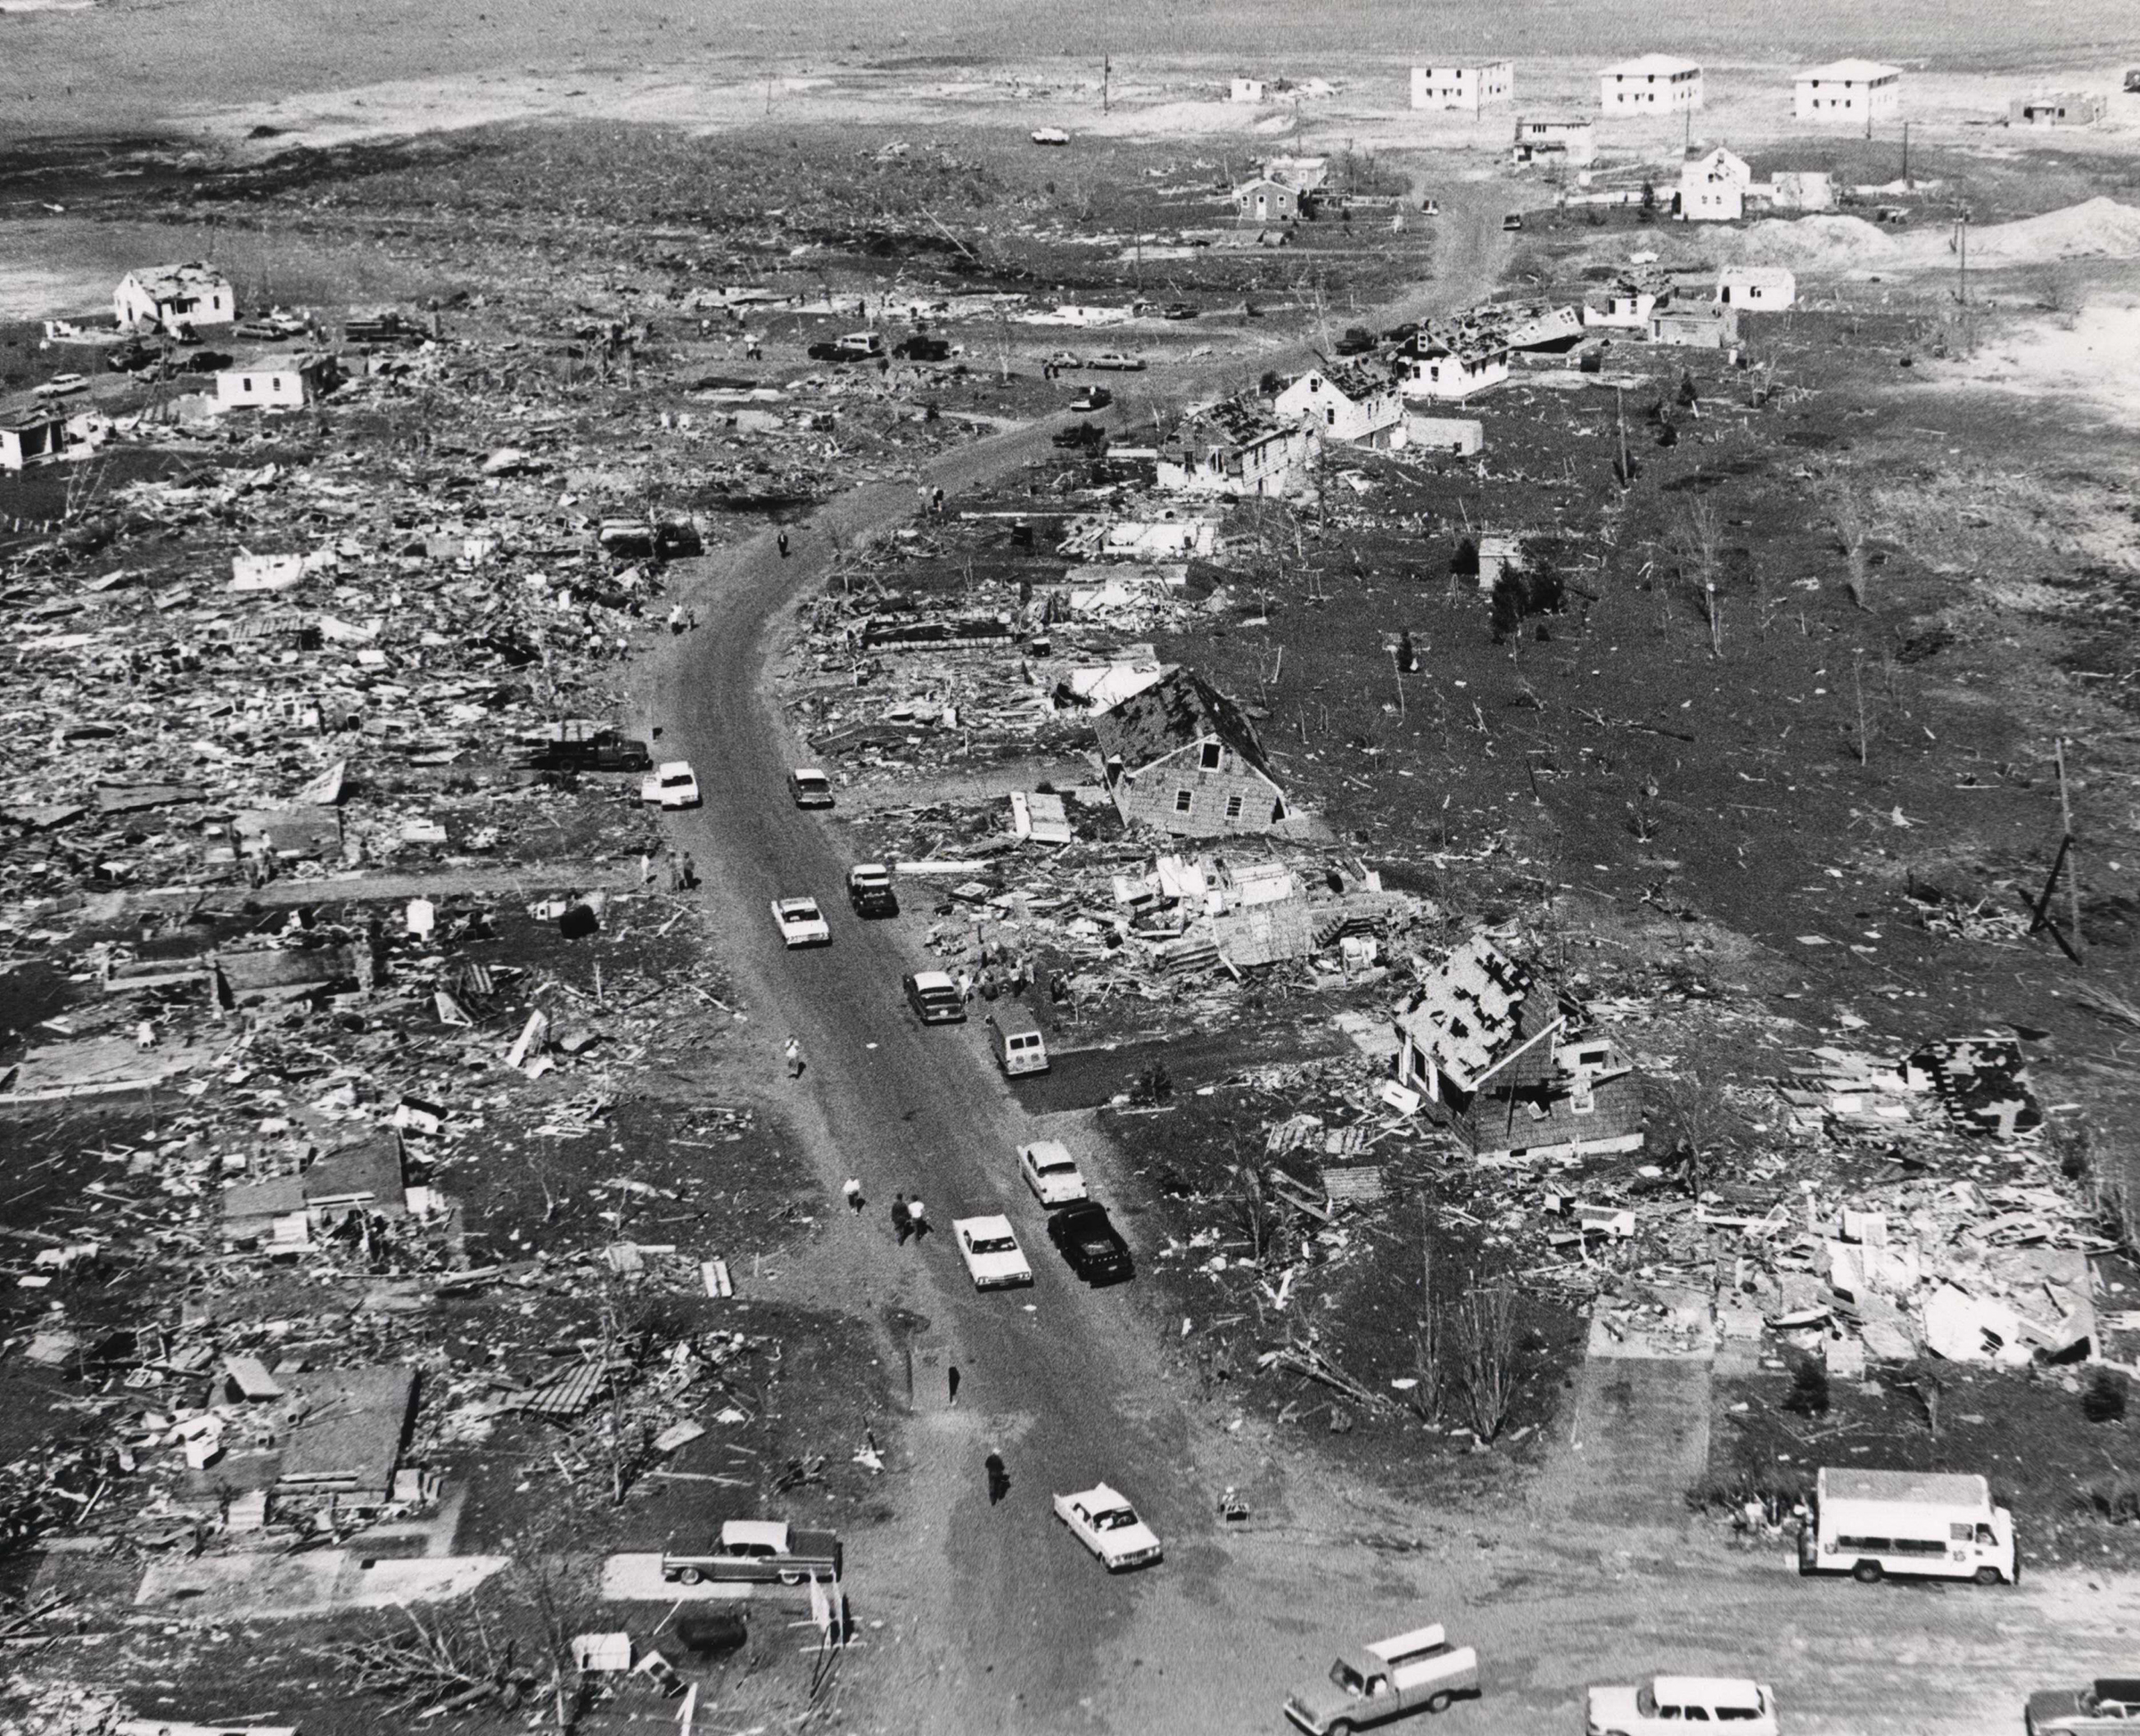 Destruction left behind in Fridley from the 1965 tornado outbreak in the Twin Cities.